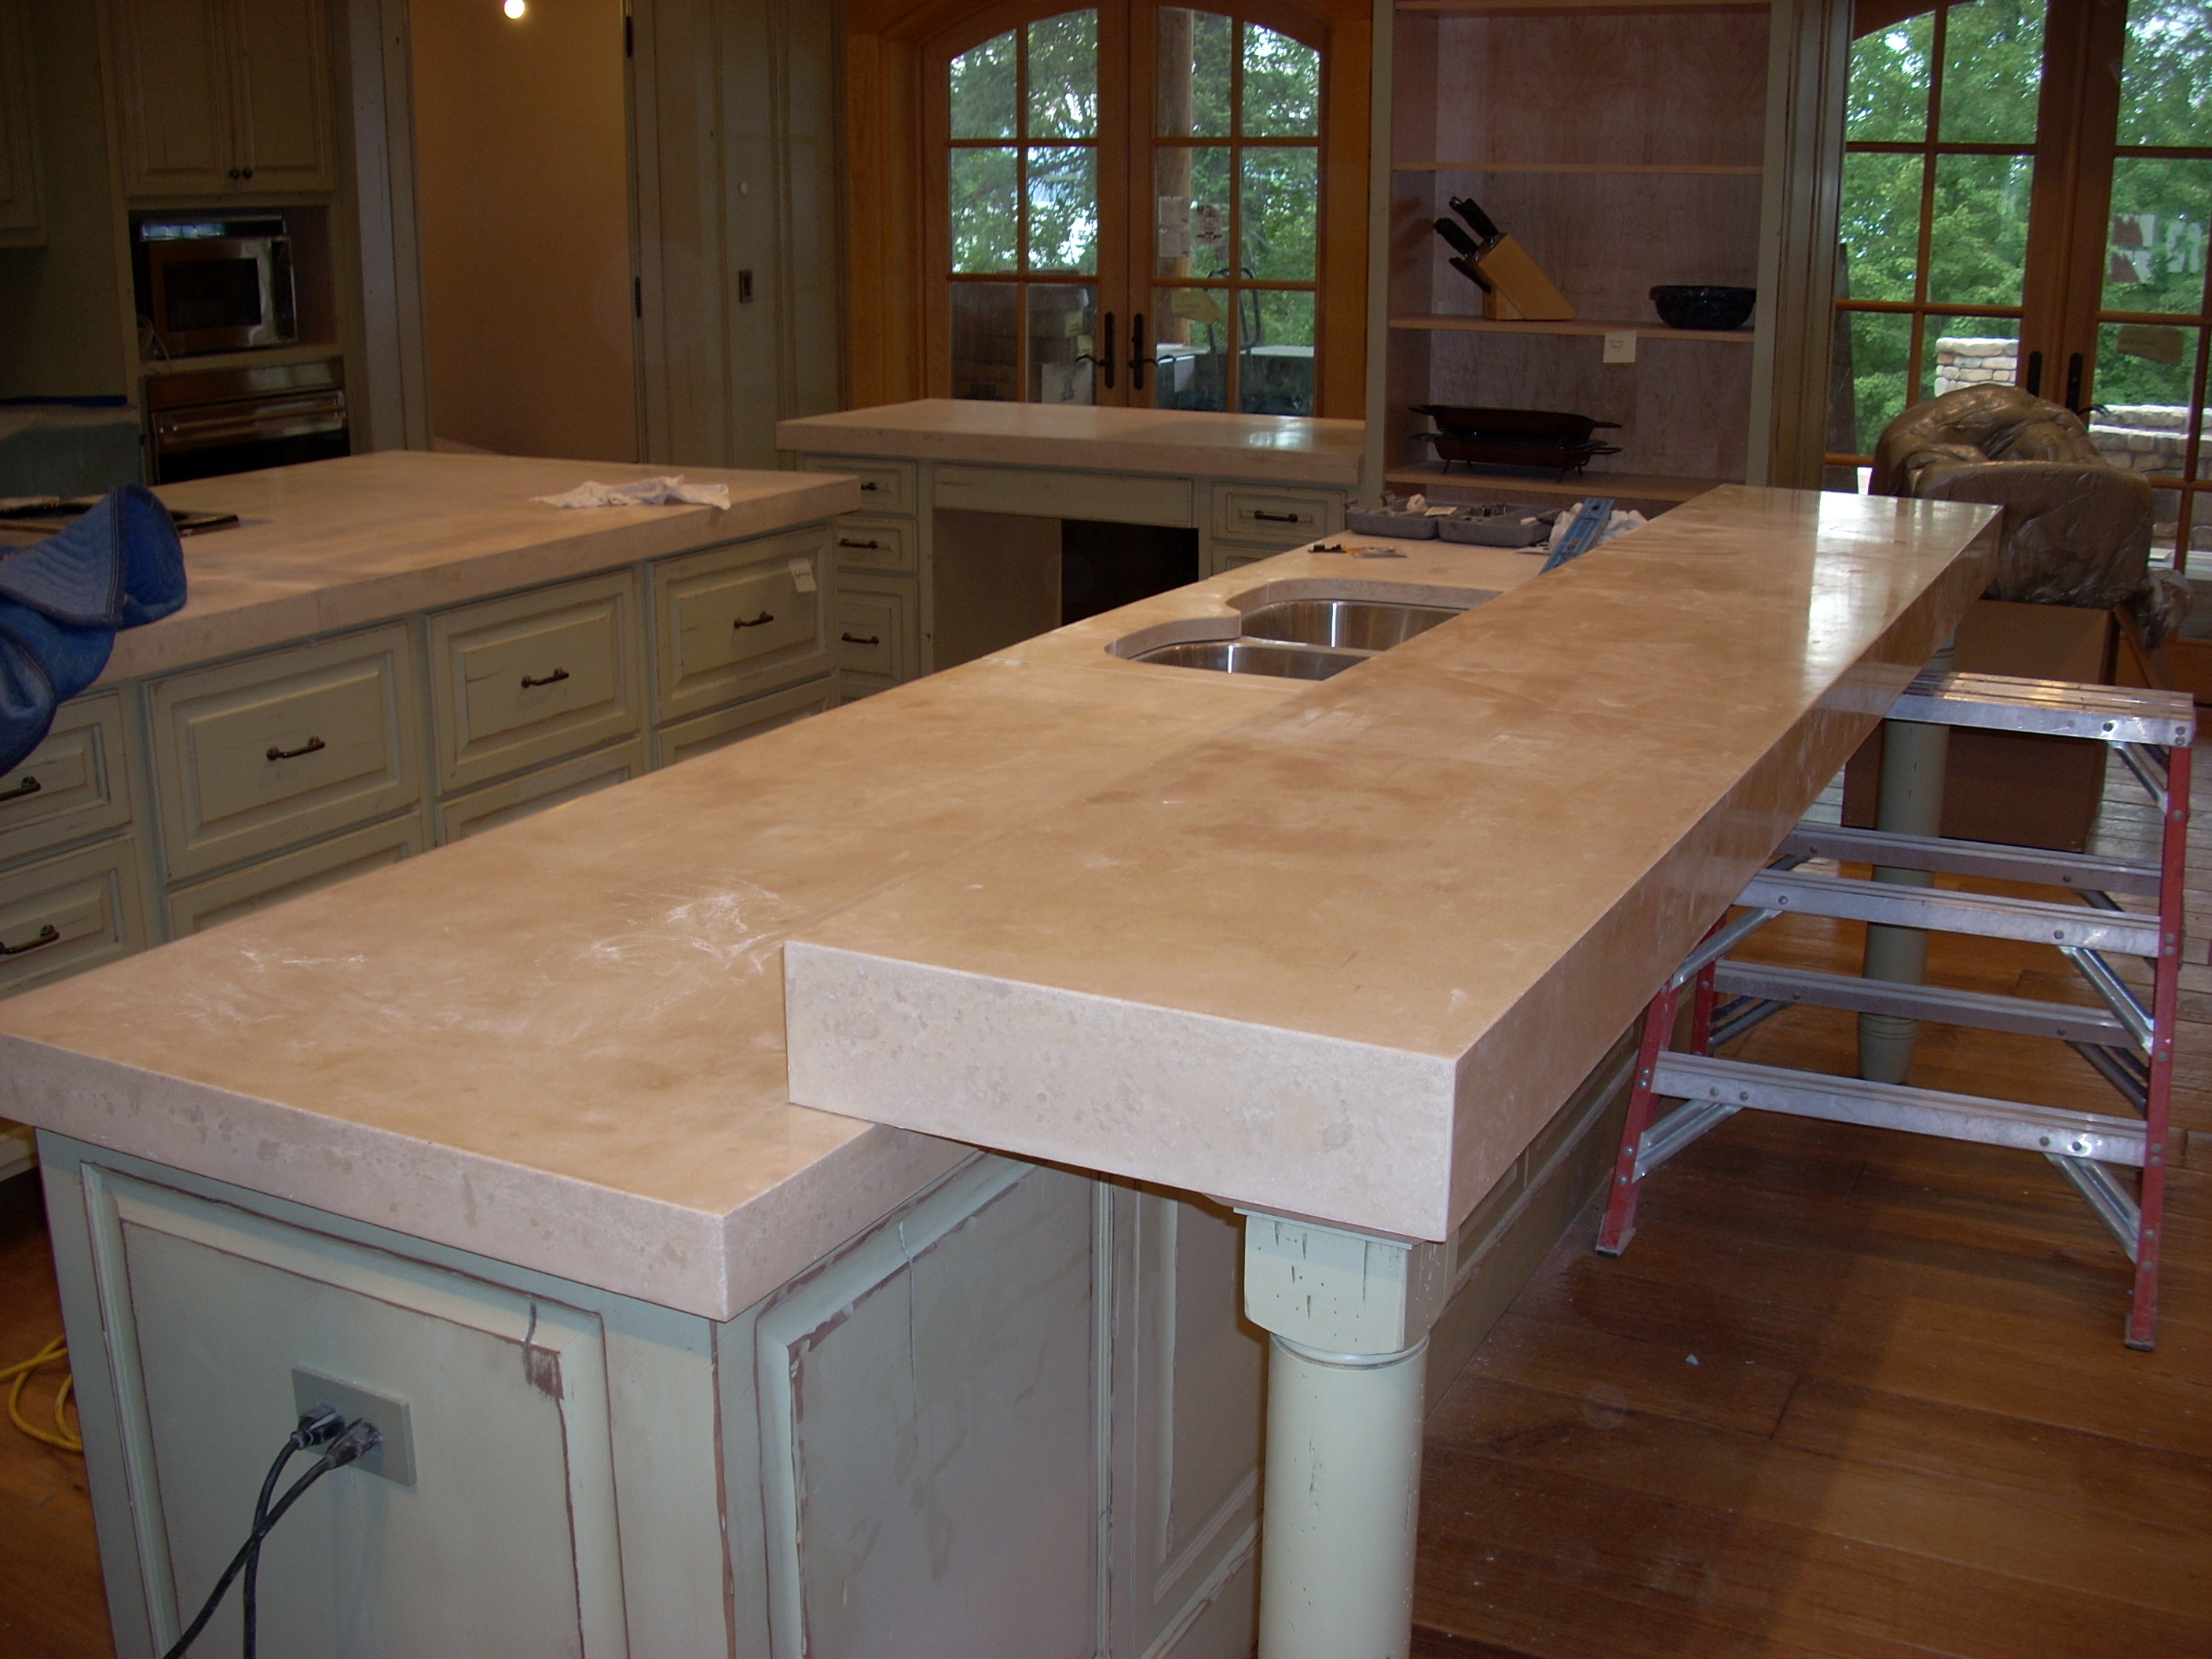 concrete countertop prices kitchen countertops prices Concrete Countertops Vs Granite